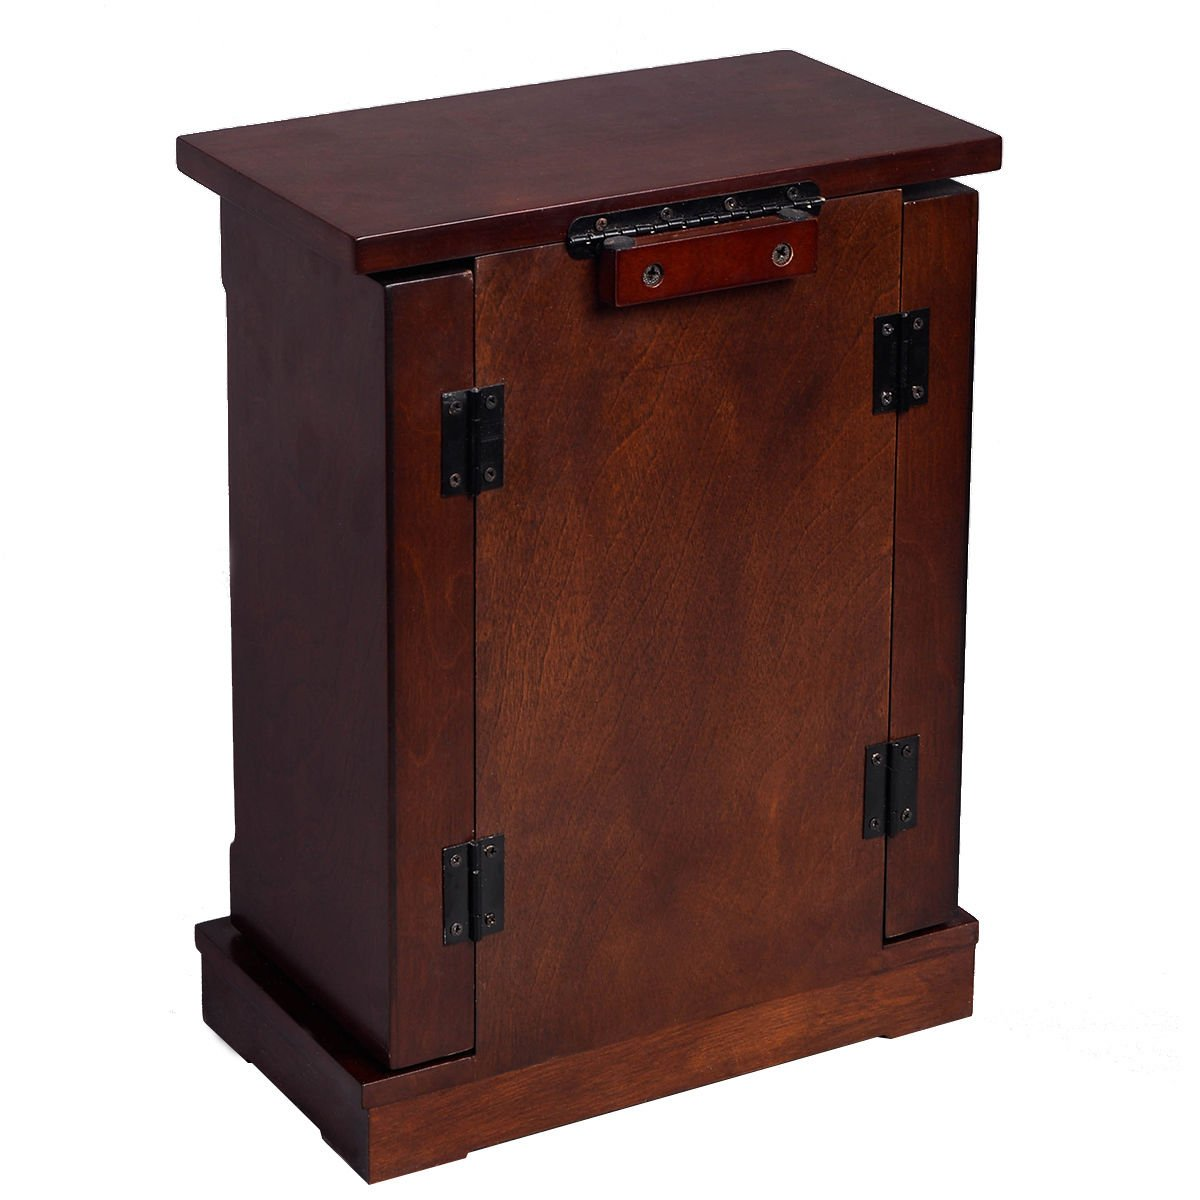 Adumly Armoire Jewelry Cabinet Box Storage Chest Stand Organizer Wood by Adumly (Image #3)